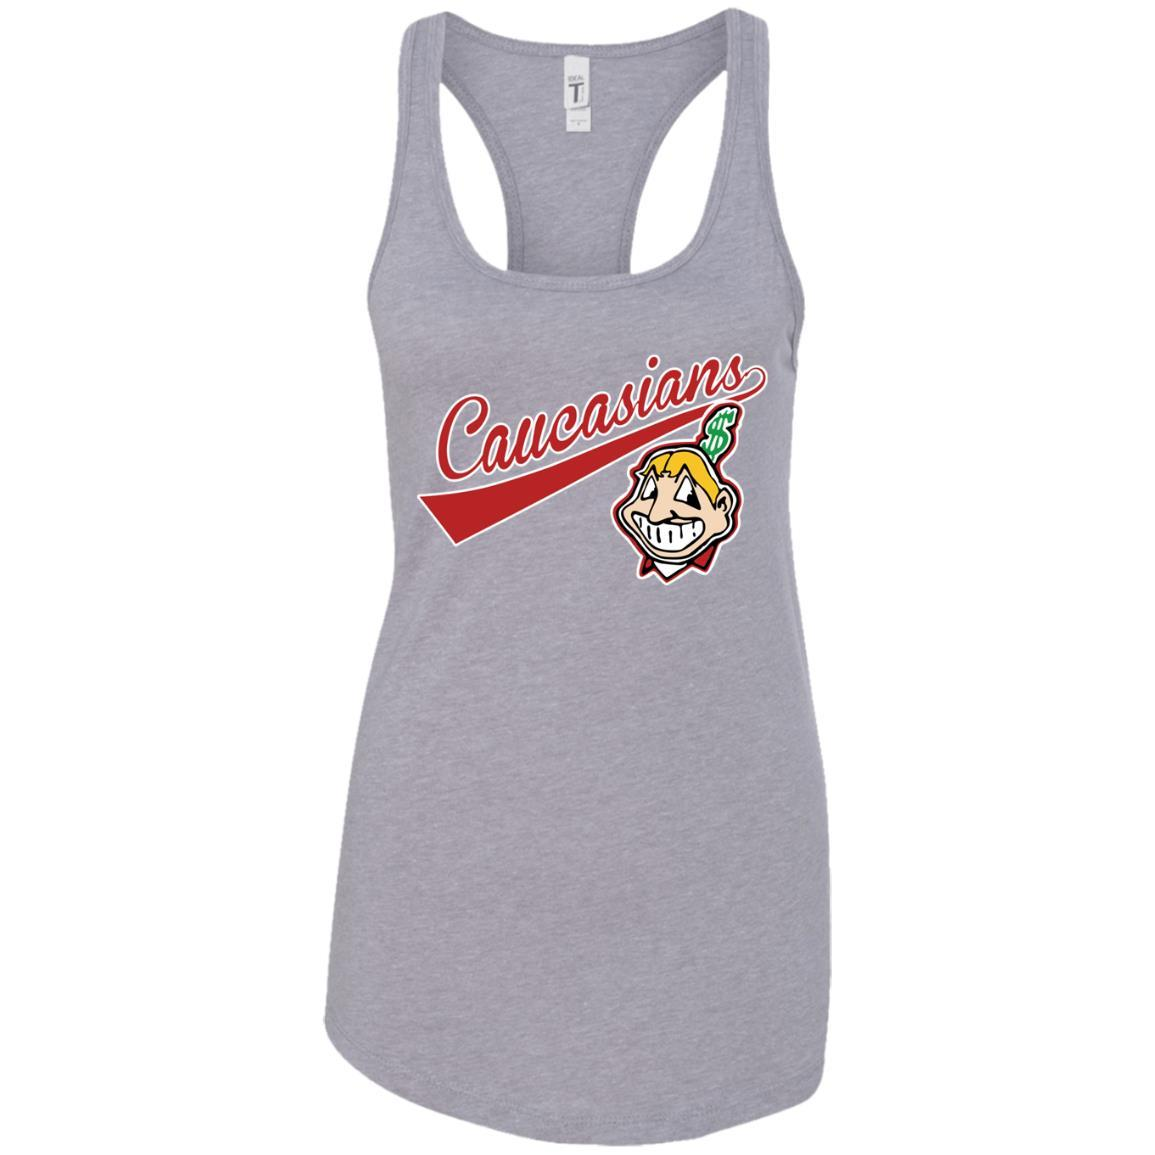 Cleveland Caucasians Native Go Indians - Ladies Ideal Racerback Tank Heather Grey / 2XL